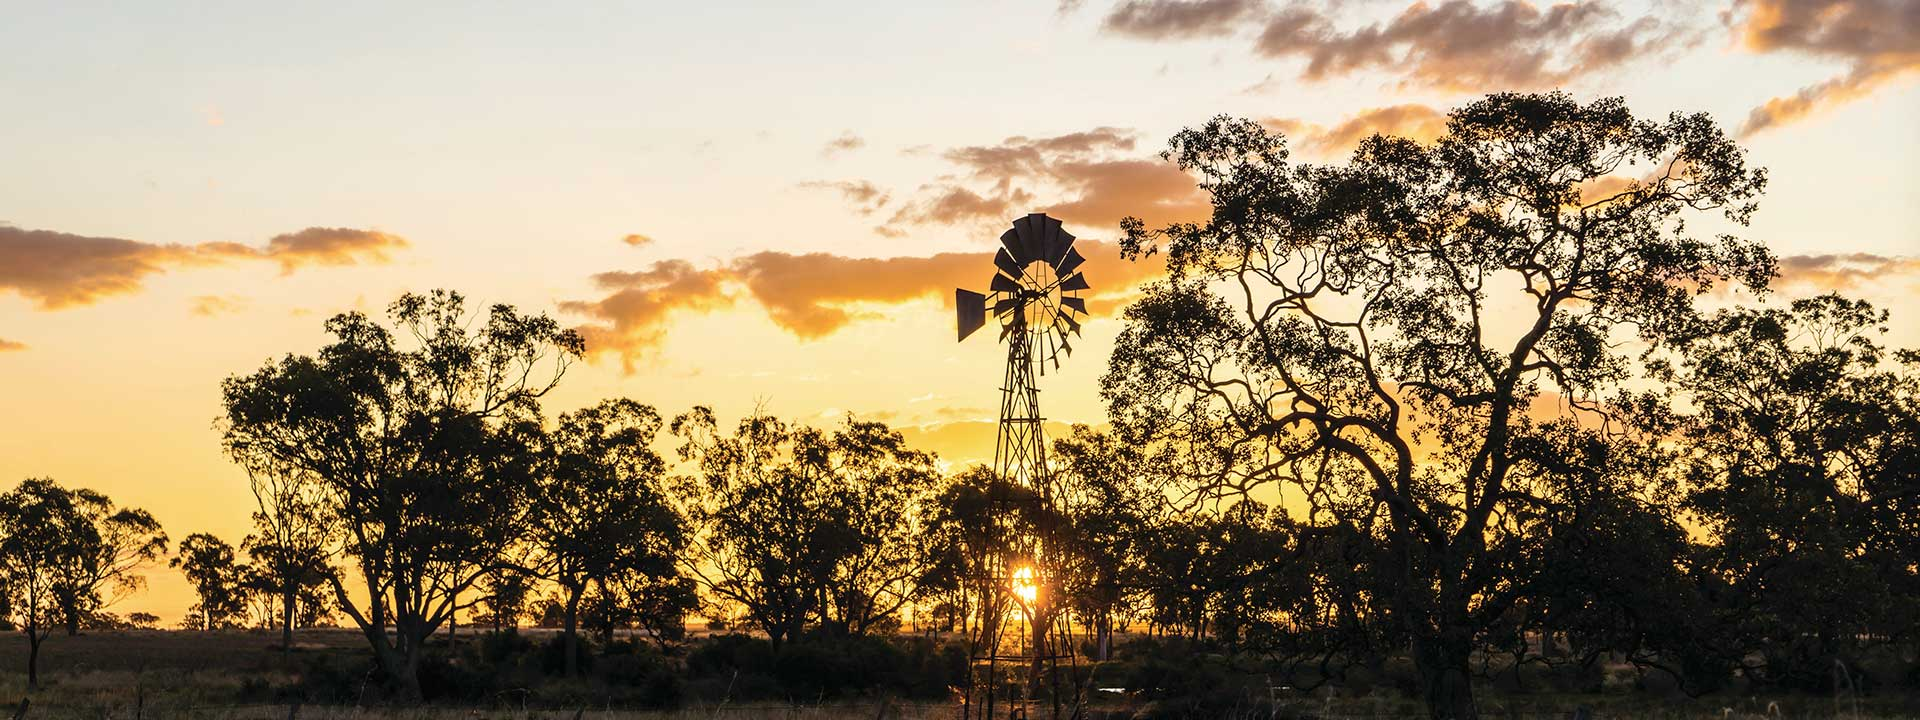 Enjoy a moment of solitude in the Dalby countryside